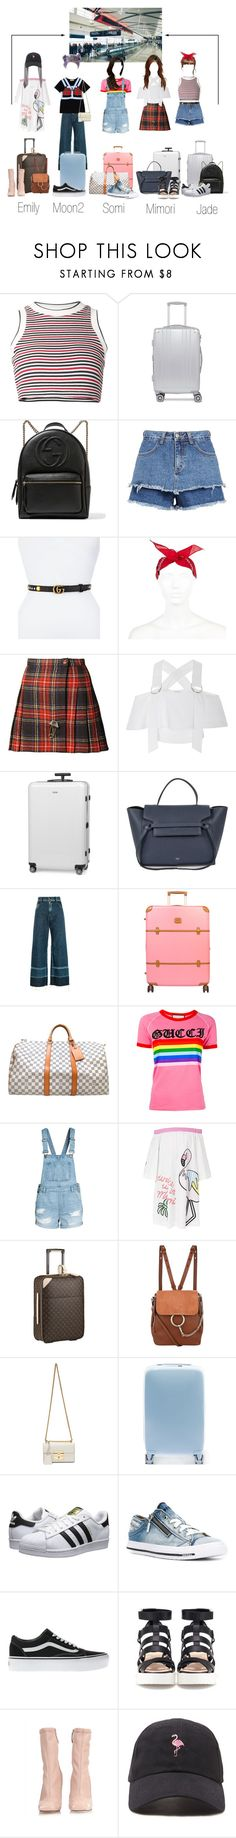 """""""Flying to Manila"""" by scarlet-offical ❤ liked on Polyvore featuring UNIF, CalPak, Gucci, River Island, Yves Saint Laurent, Rodebjer, Tiffany & Co., Rimowa, CÉLINE and Rachel Comey"""